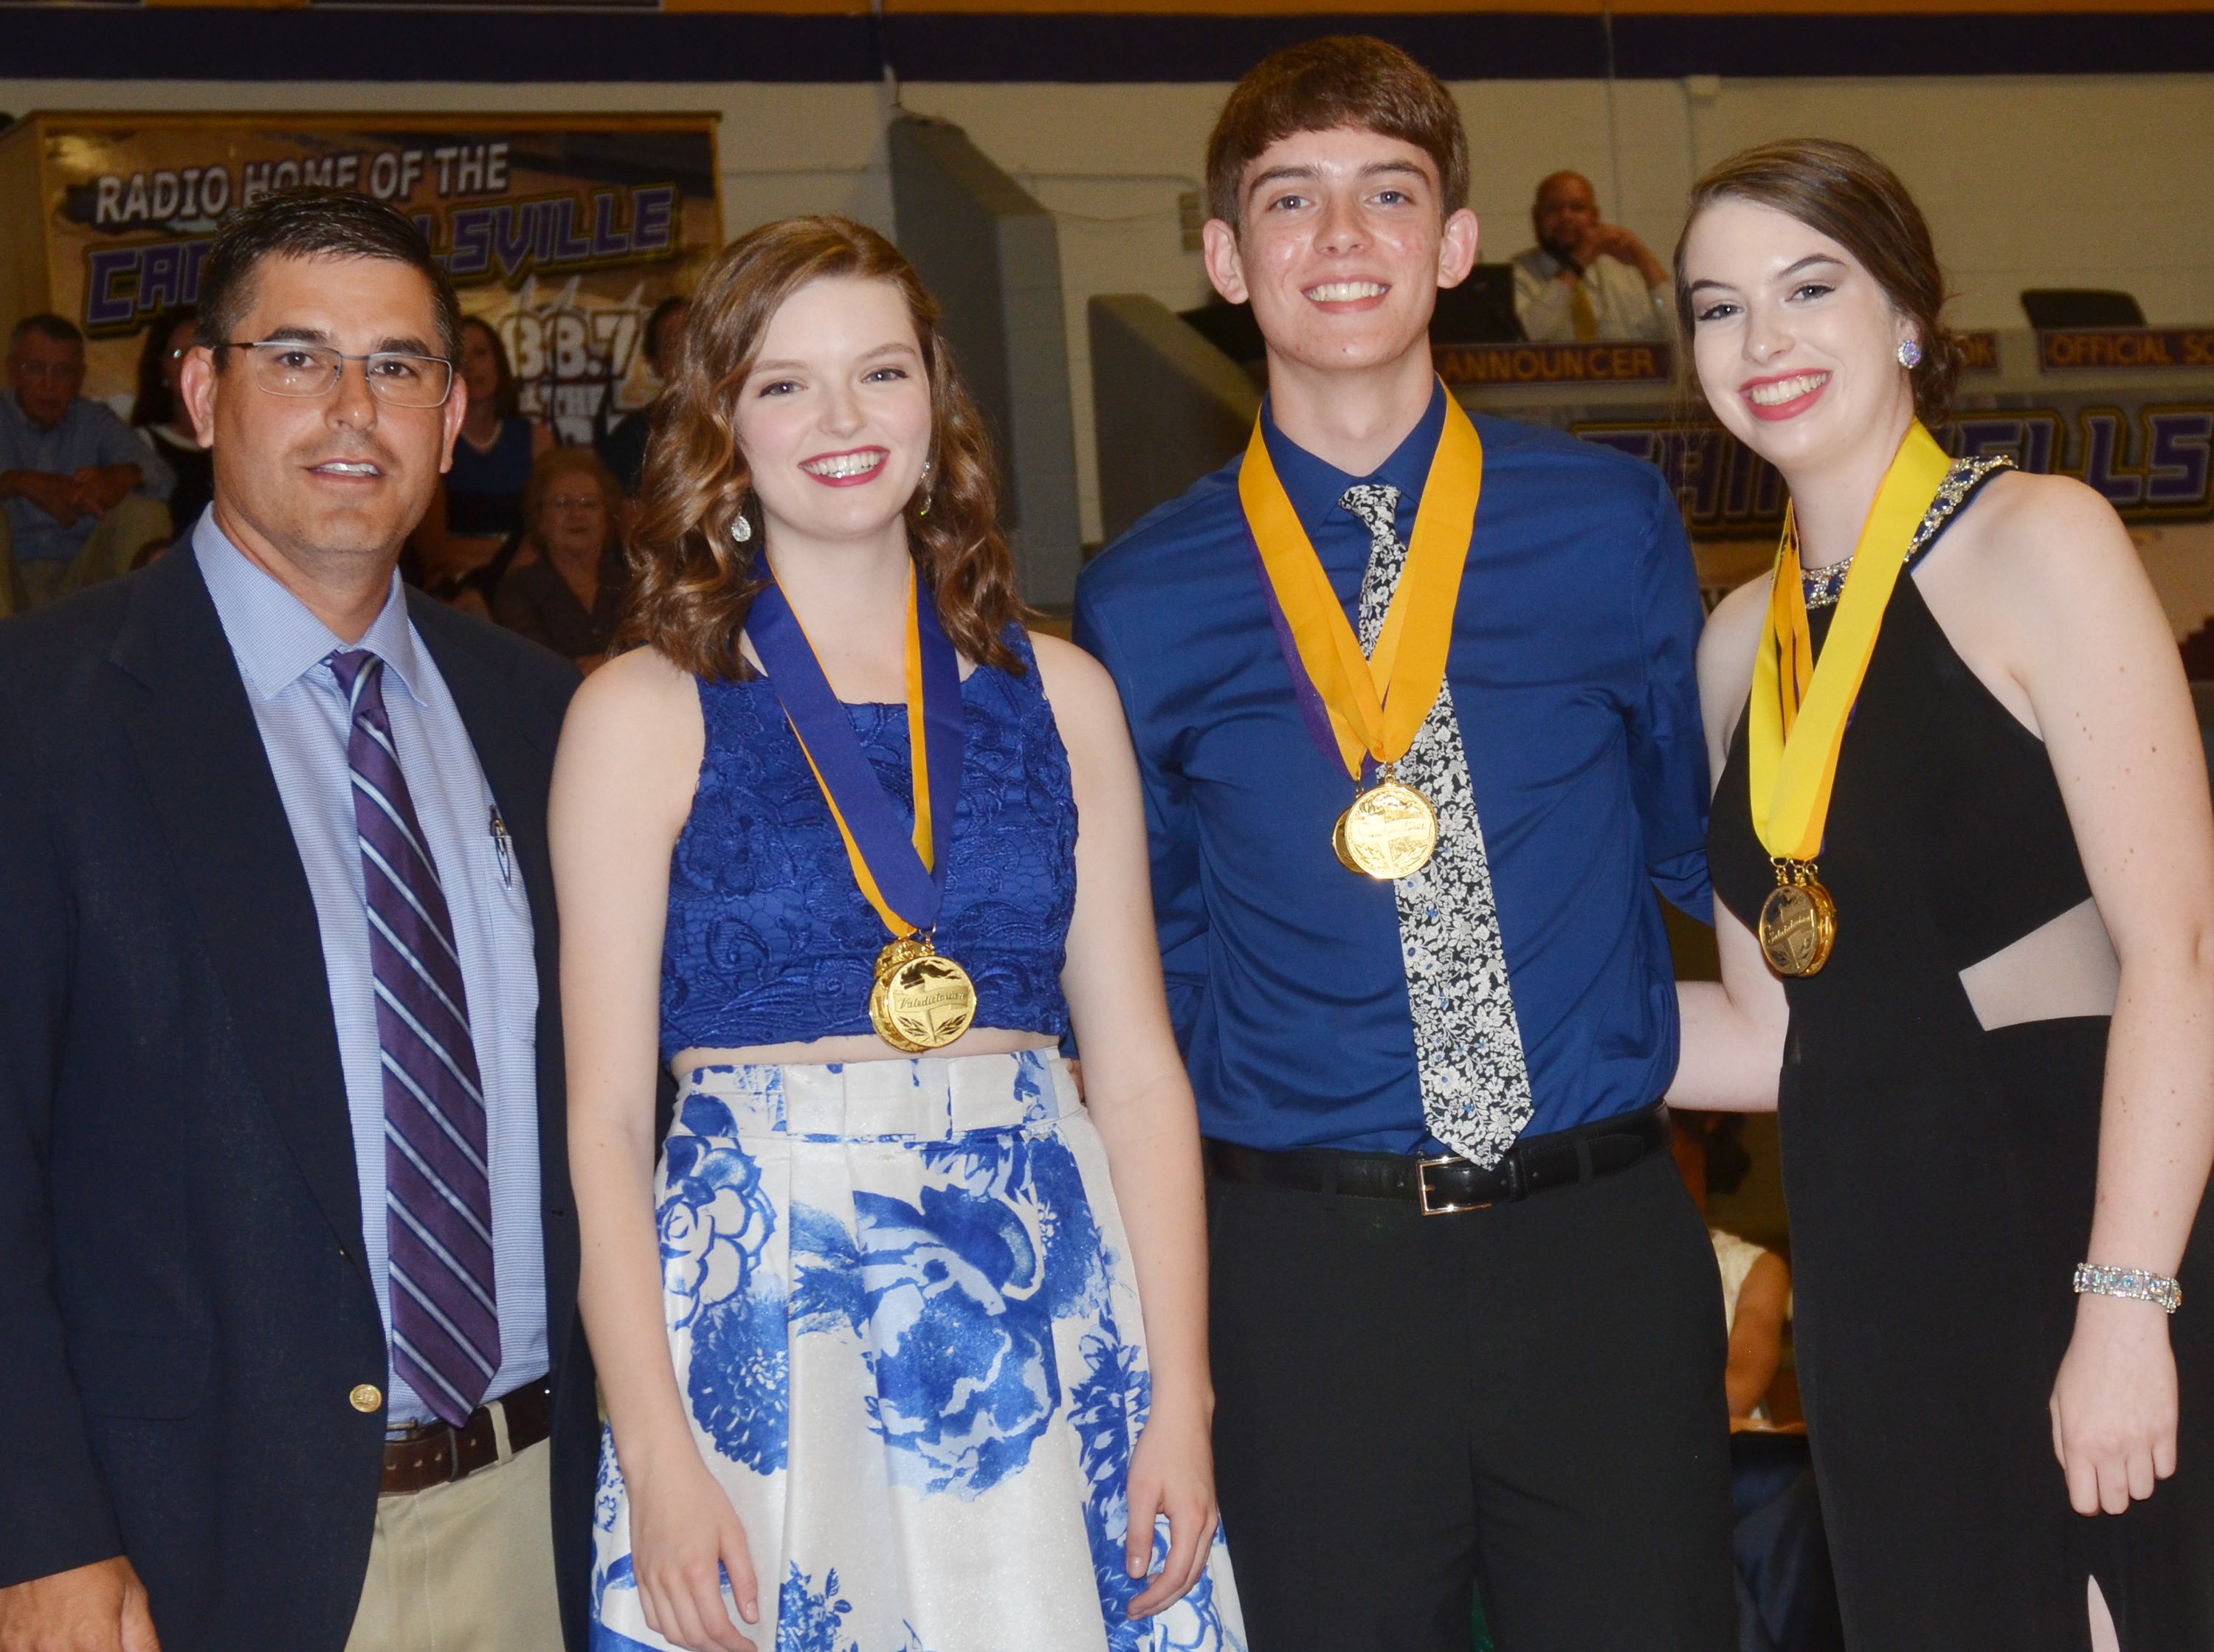 Class of 2017 valedictorians and salutatorian, pictured with CHS Principal Kirby Smith are, from left, valedictorians Blair Lamb and Murphy Lamb and salutatorian Laura Lamb.